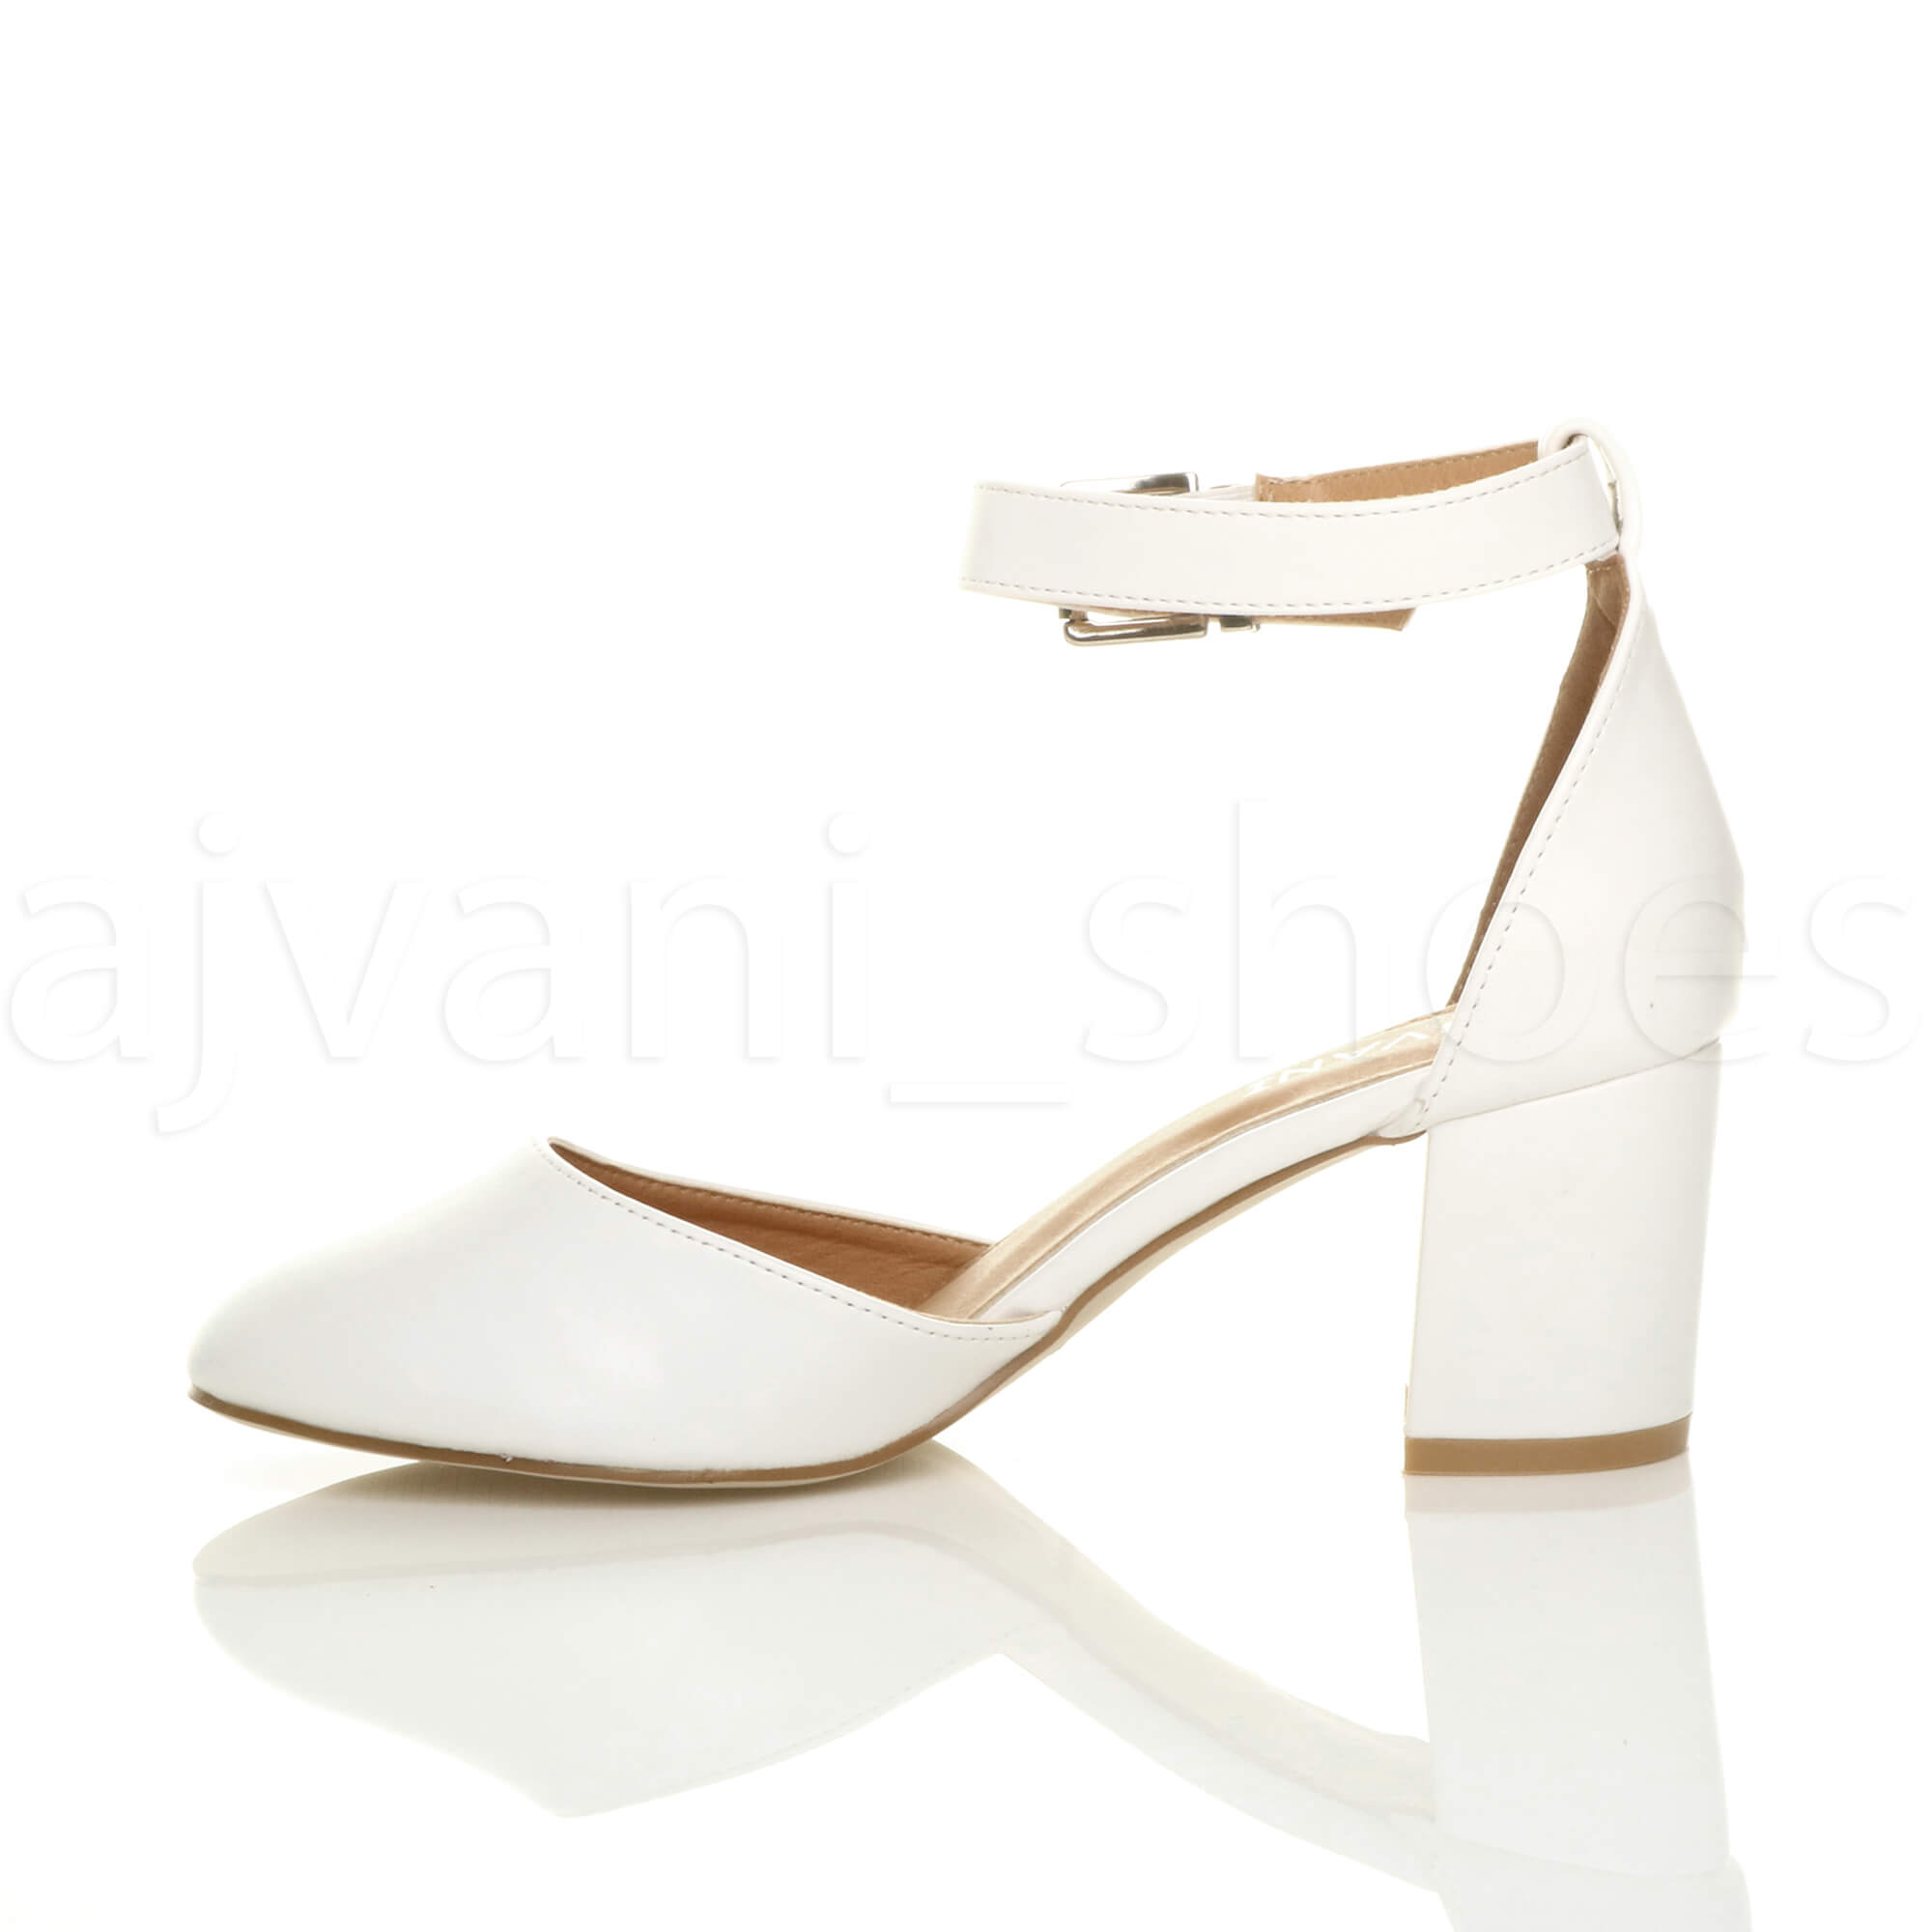 WOMENS-LADIES-LOW-MID-BLOCK-HEEL-ANKLE-STRAP-MARY-JANE-COURT-SHOES-SANDALS-SIZE thumbnail 196